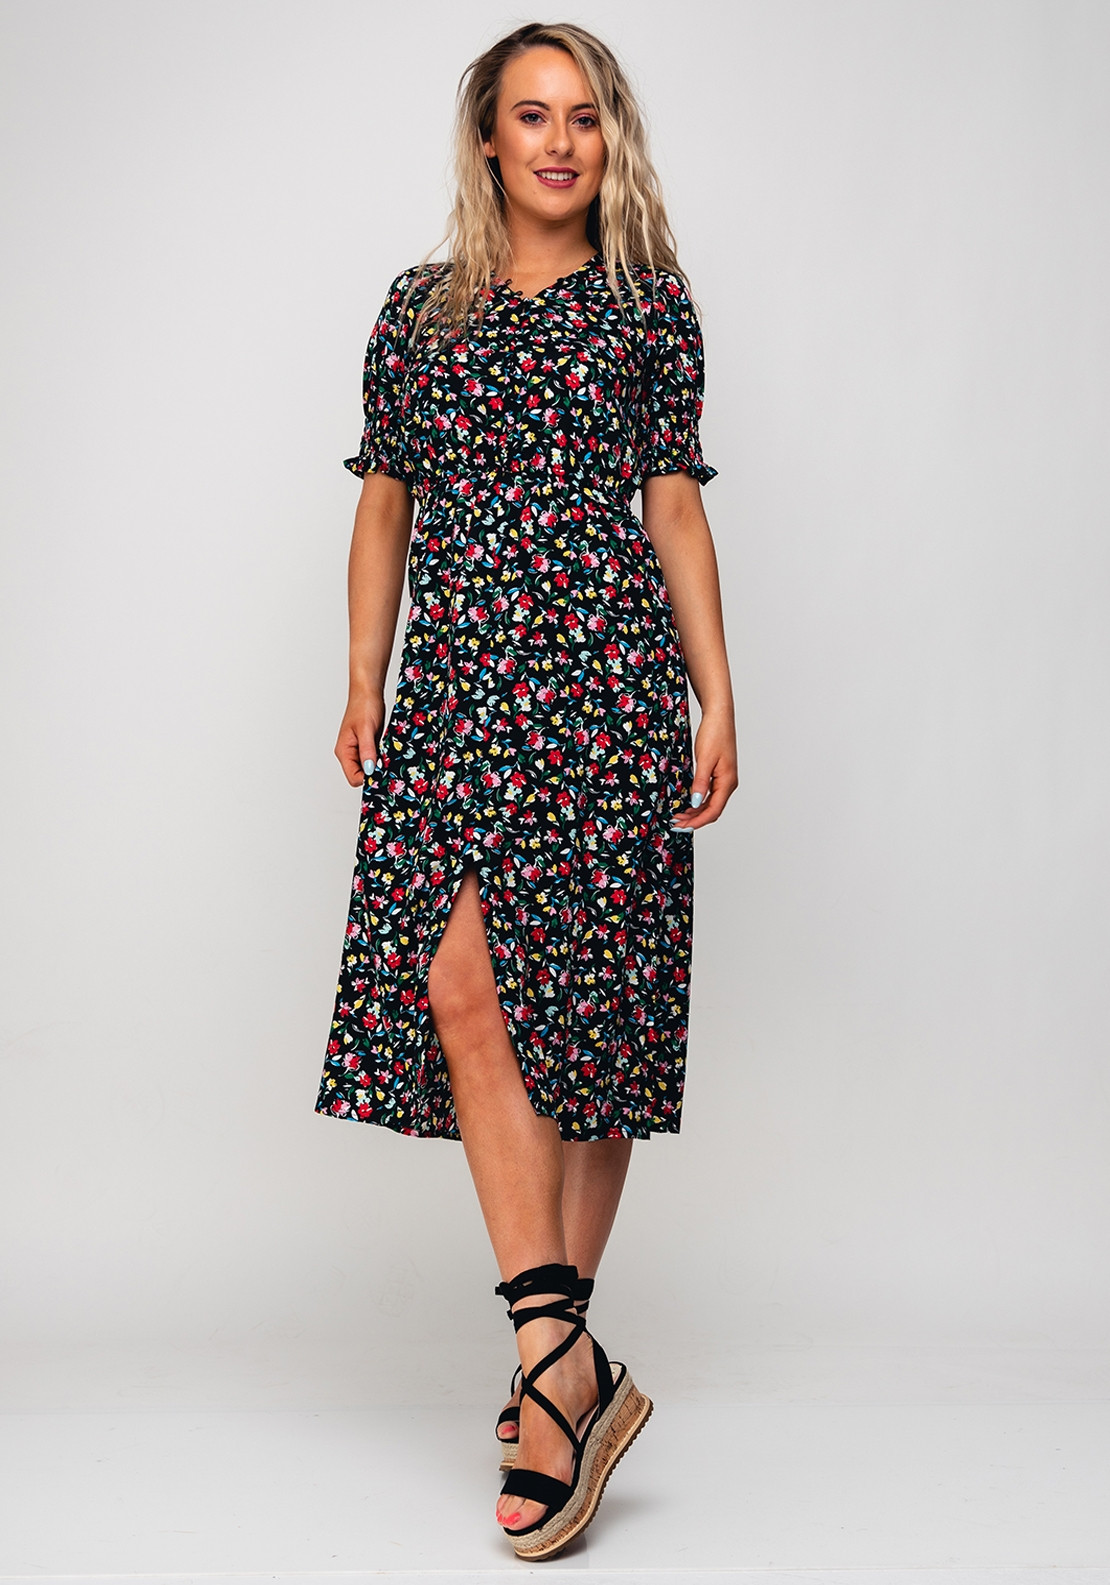 38a24c7412c4 Seventy1 Floral Print Dress, Black. Be the first to review this product